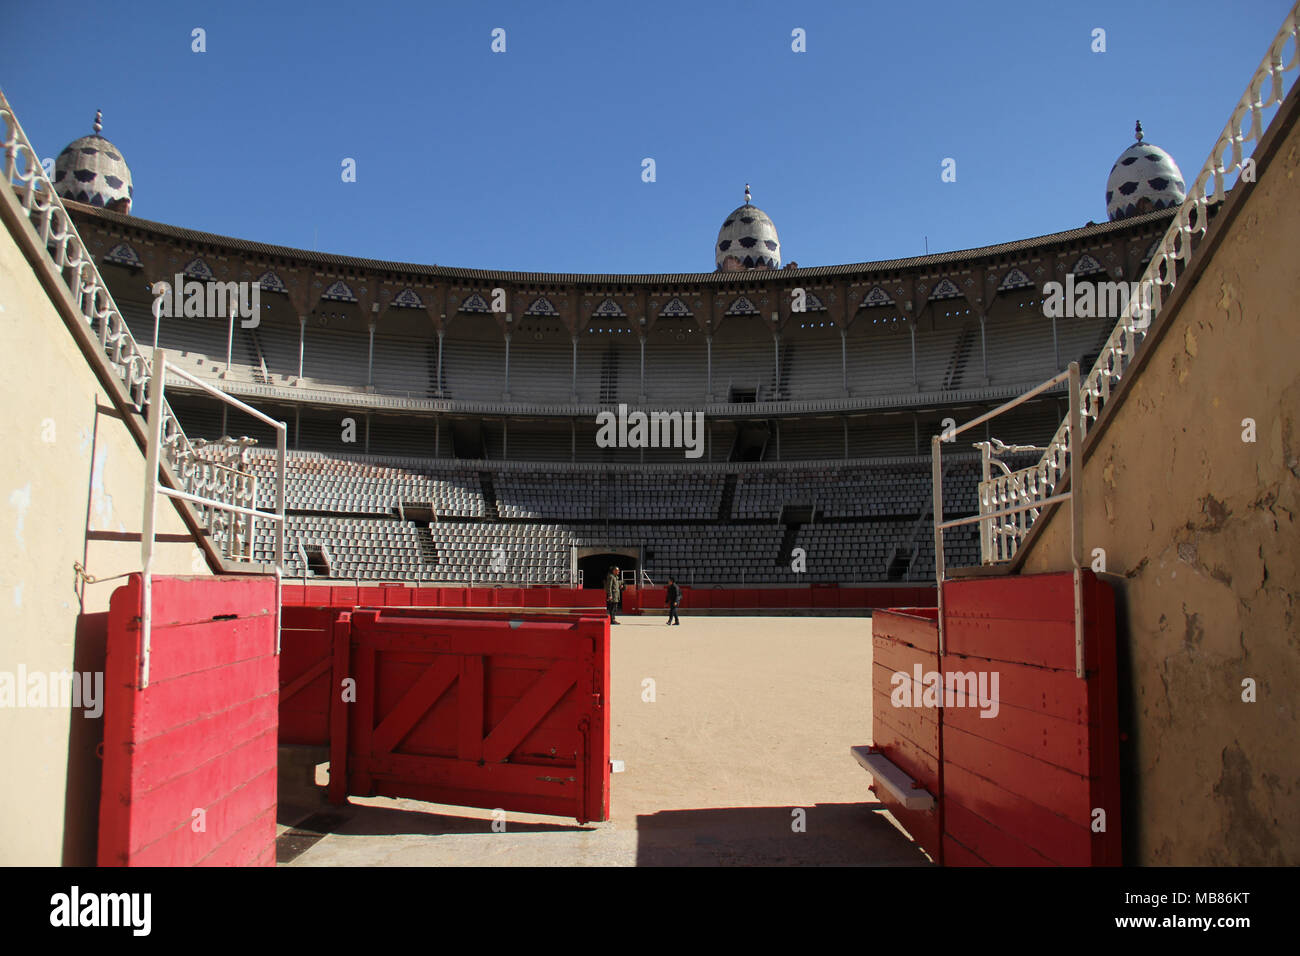 Barcelona, Spain -  31st March, 2018. Bull entrance gate at the La Monumental. This was the last bullfighting arena in commercial operation in Catalonia following a bullfights banning law on 28 July 2010. General view of Barcelona, Spain. @ David Mbiyu/Alamy Live News - Stock Image